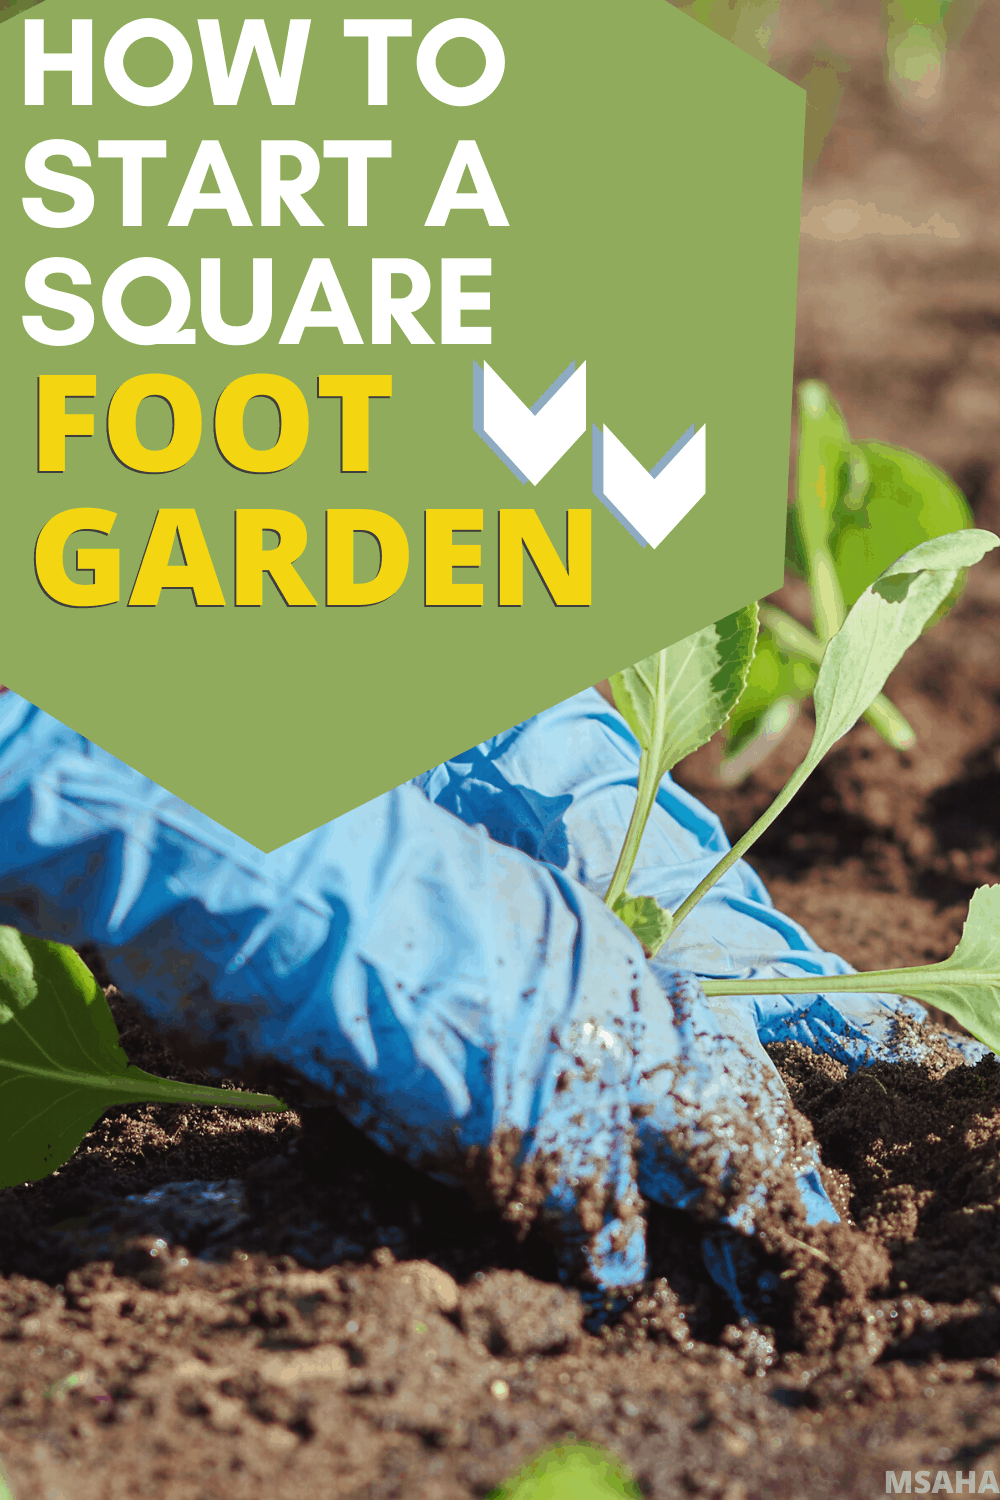 Learn all you need to know about square foot garden from why it is recommended for beginner gardeners to how to build the perfect square foot garden. #gardening #gardeningtips #gardeningforbeginners via @mystayathome